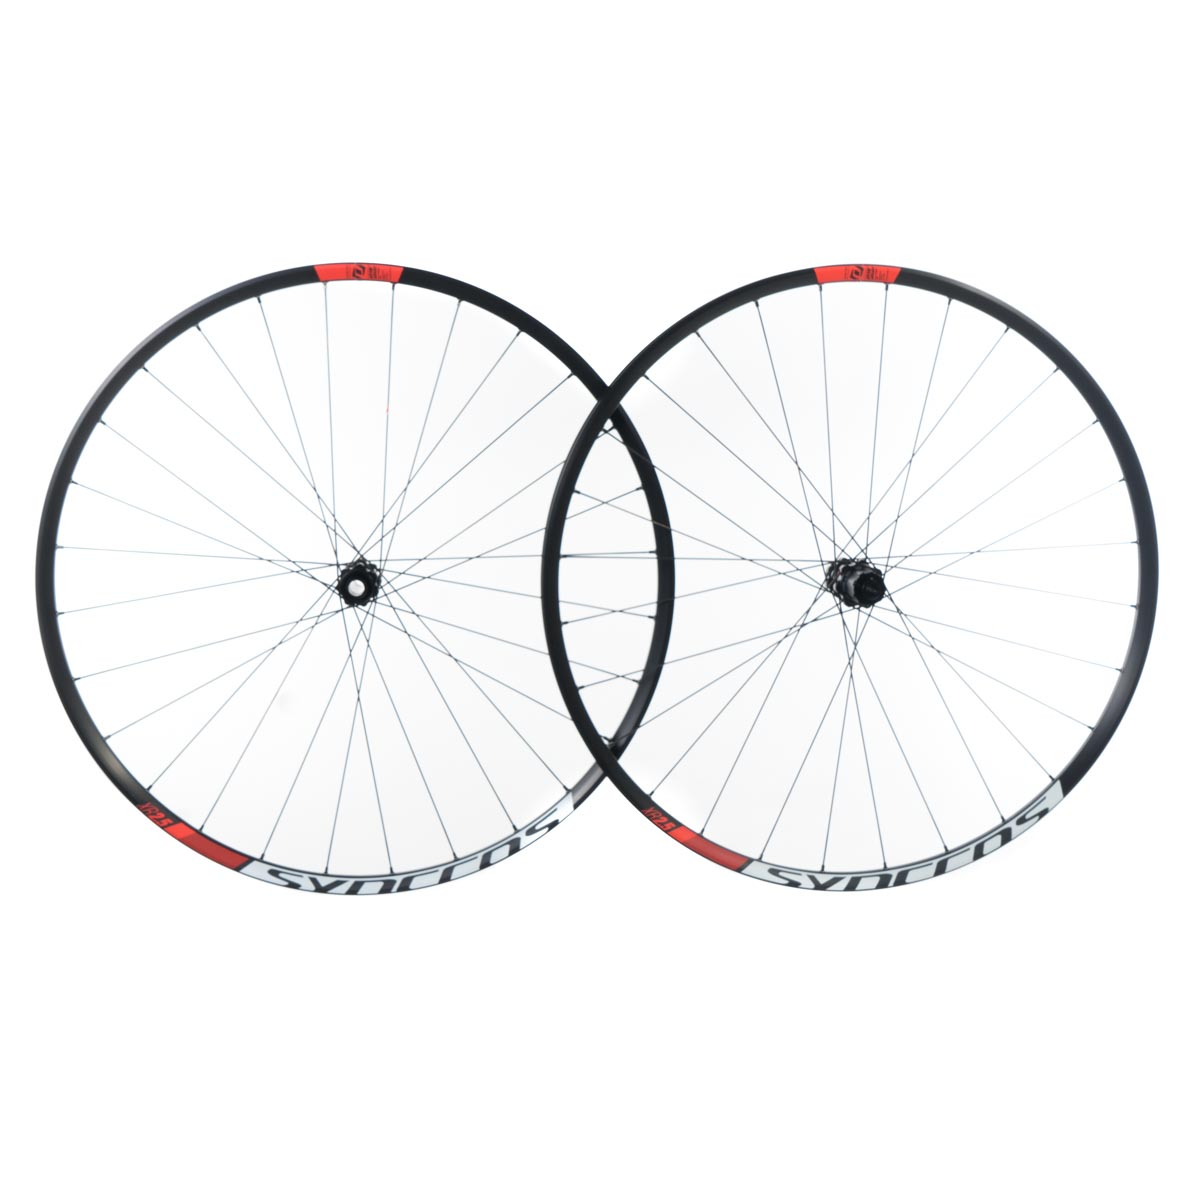 Details about Syncros XR 2 5 29er DT Swiss Tubeless Ready Boost Disc  Mountain Wheelset